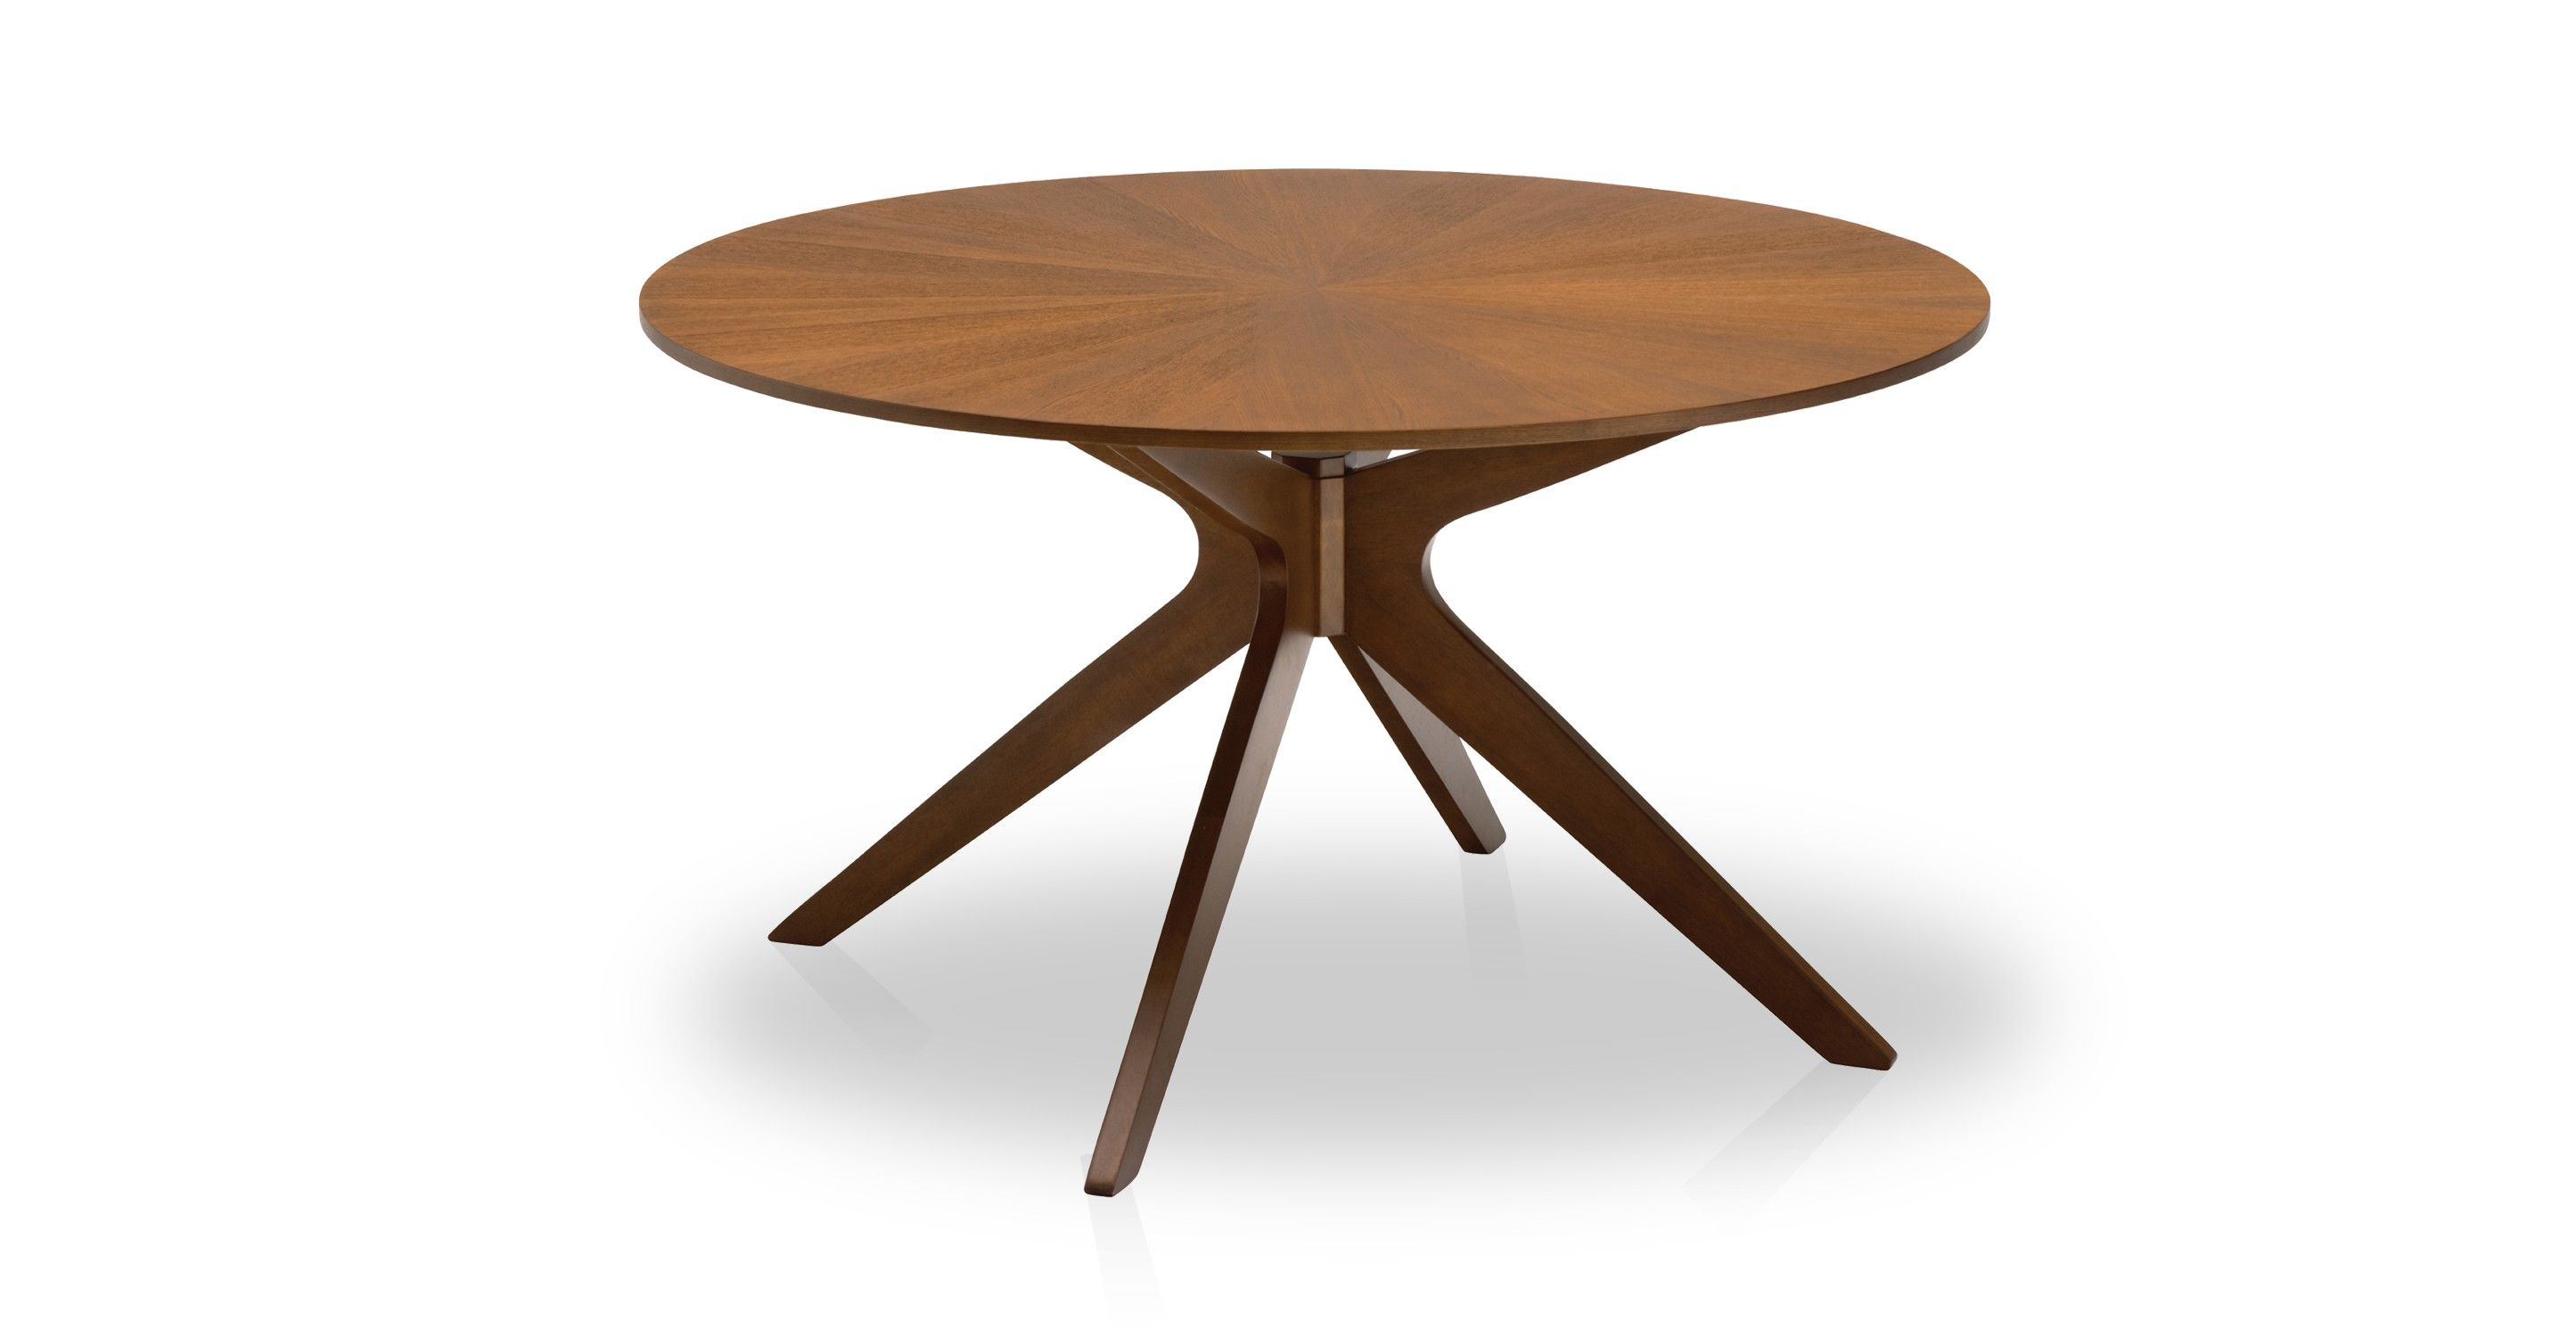 Round mid century modern dining table in brown wood for Modern large round dining table